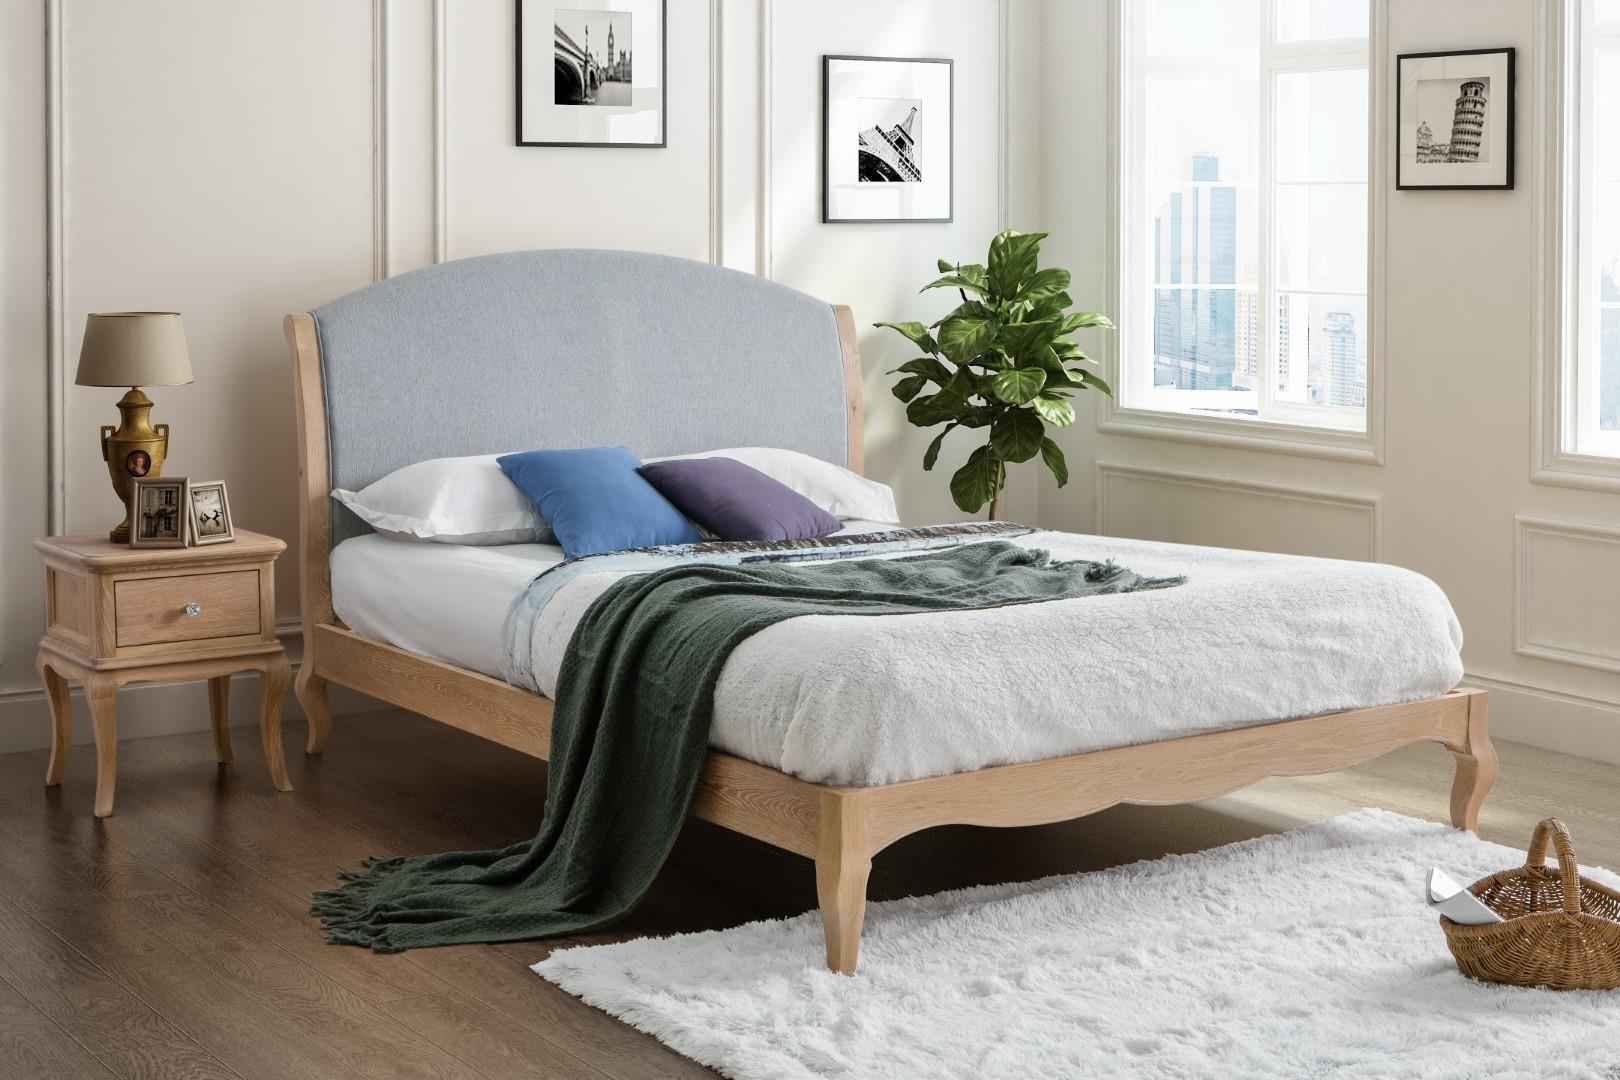 Birlea Ritz Solid Oak Wood Bed Frame Grey Fabric 4FT6 Double 135cm Bedstead